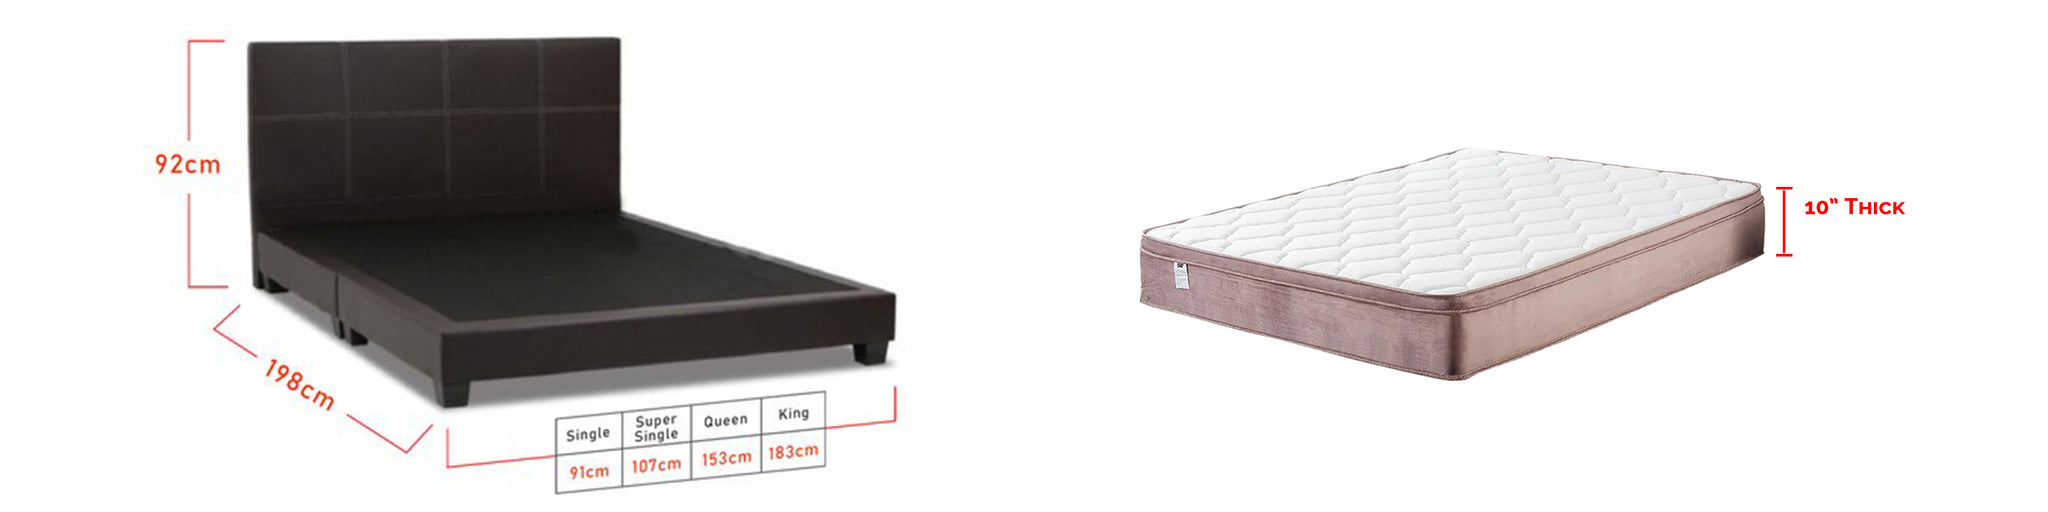 Sabrina Bed Frame + 10 inch Diomire Latex Mattress In Single, Super Single, Queen, and King Size